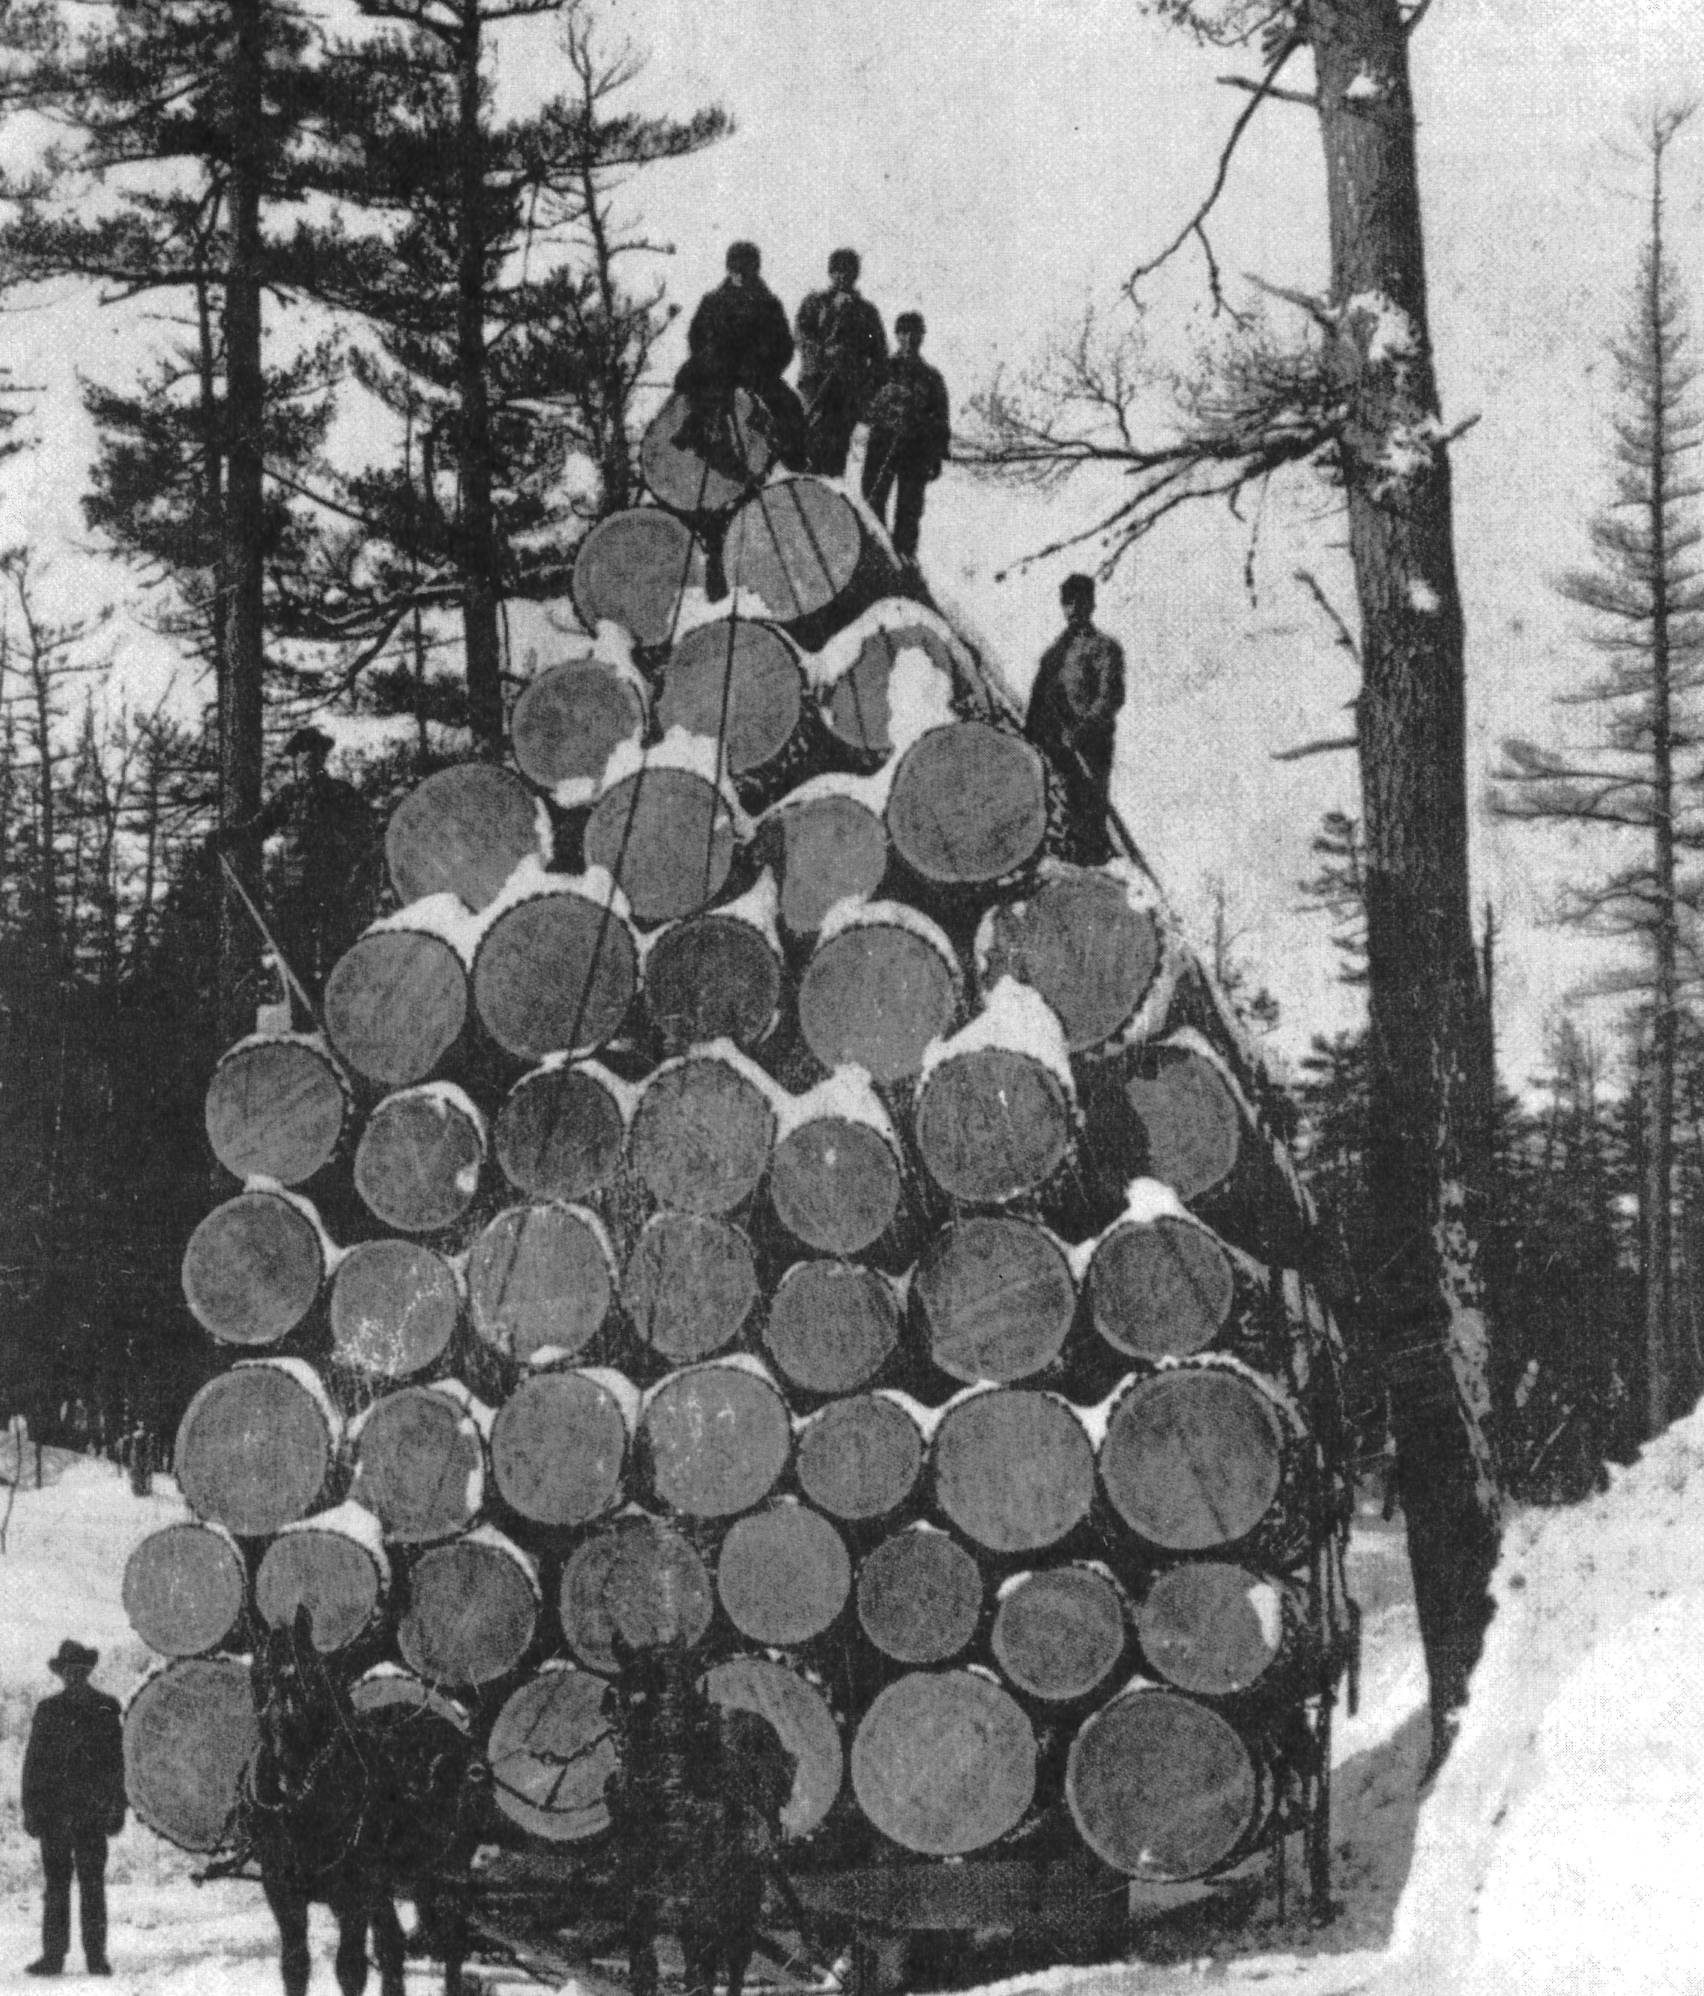 The largest load of logs ever hauled by one team of horses, this sleighful stood over 31 feet high and weighed 144 tons. Nine railroad cars were used to ship these logs to the 1893 Chicago World's Fair. Courtesy of Boulder Junction Area Historical Society